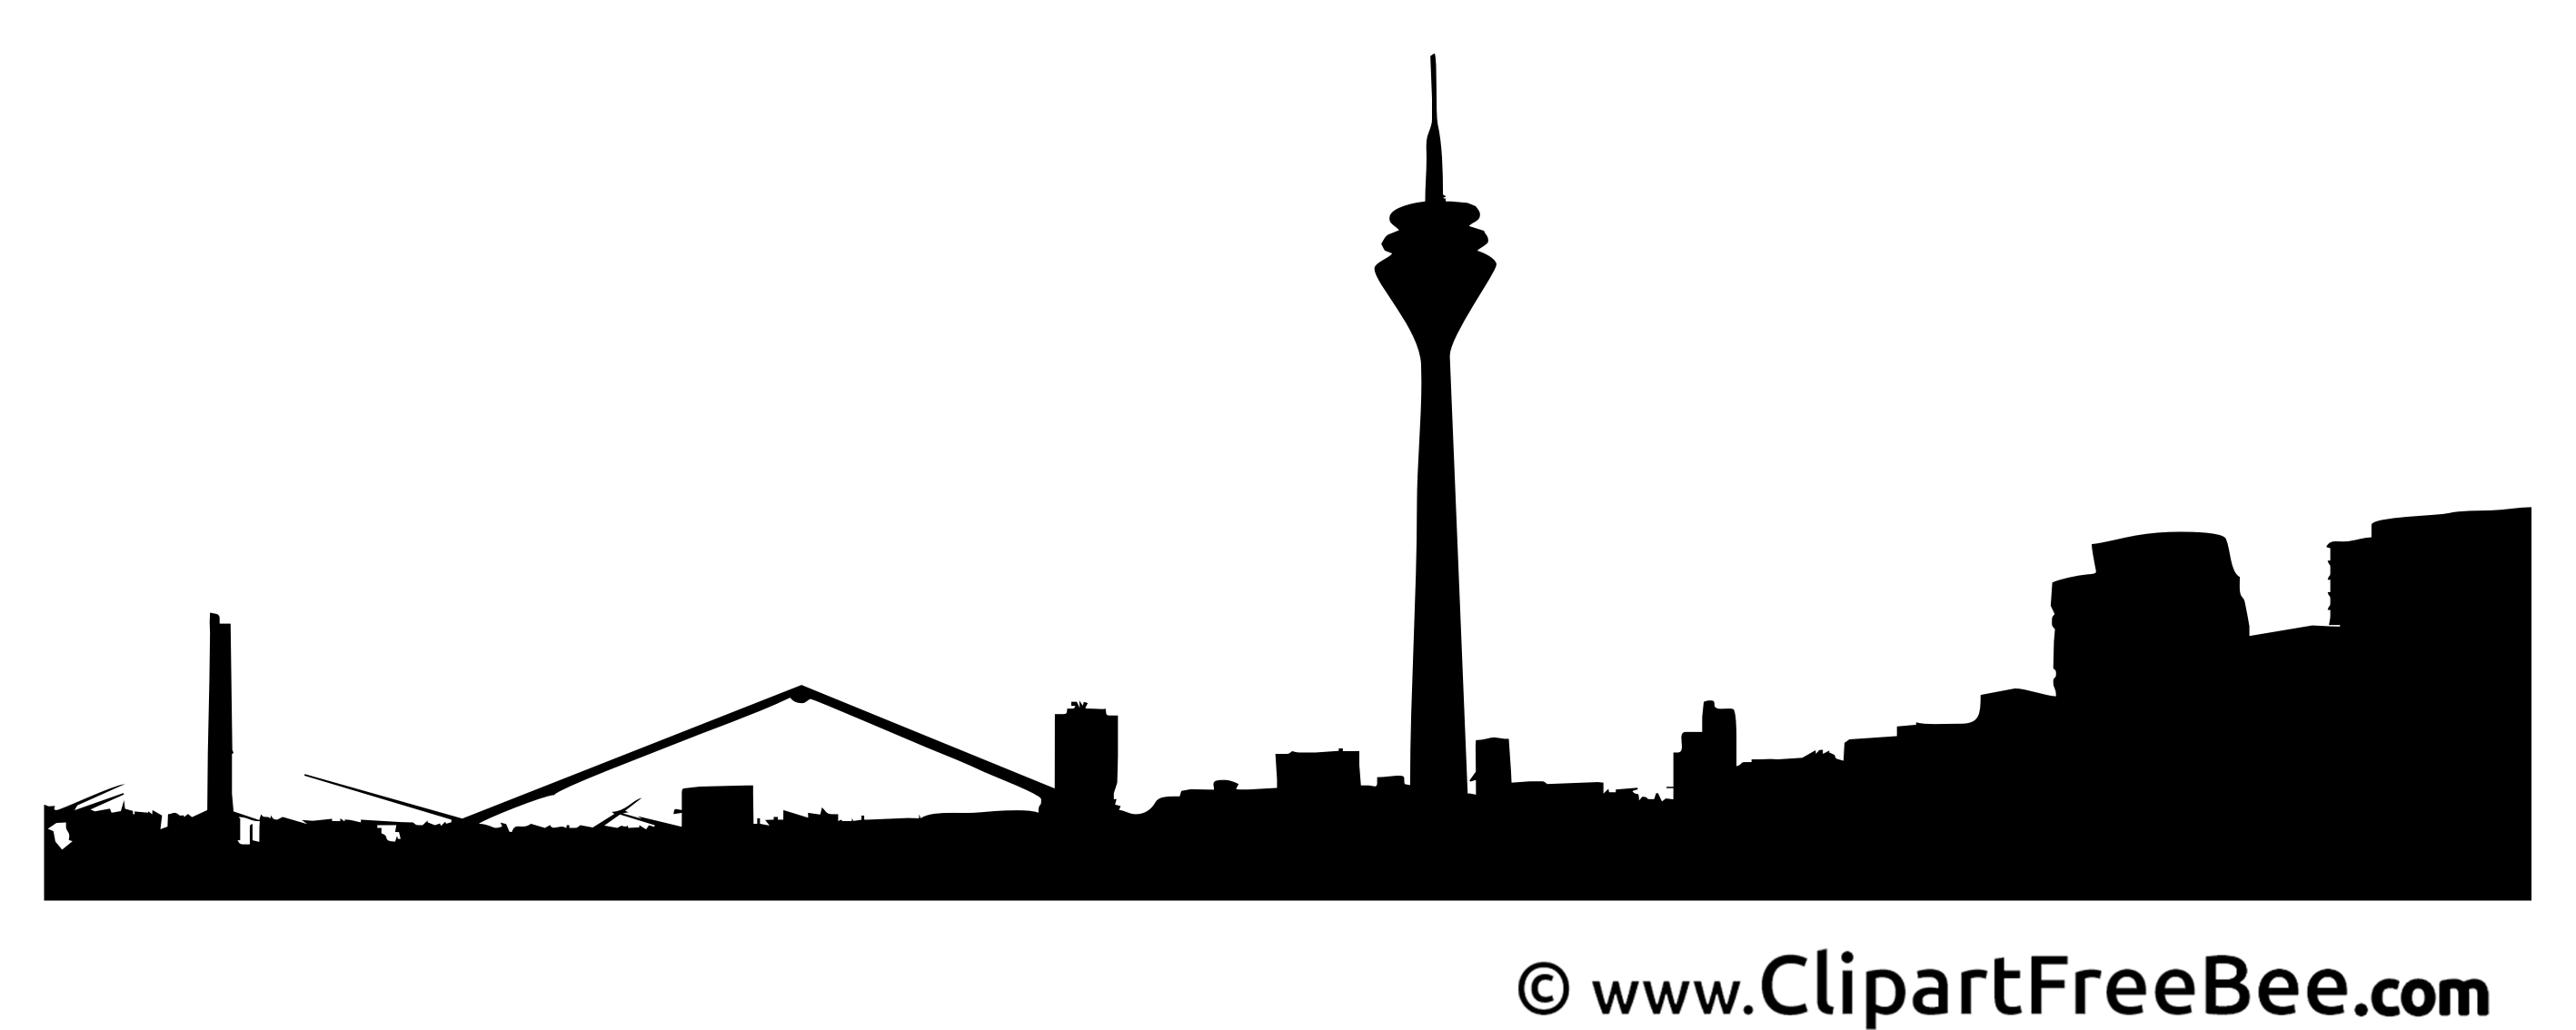 Dusseldorf download Clip Art for free.